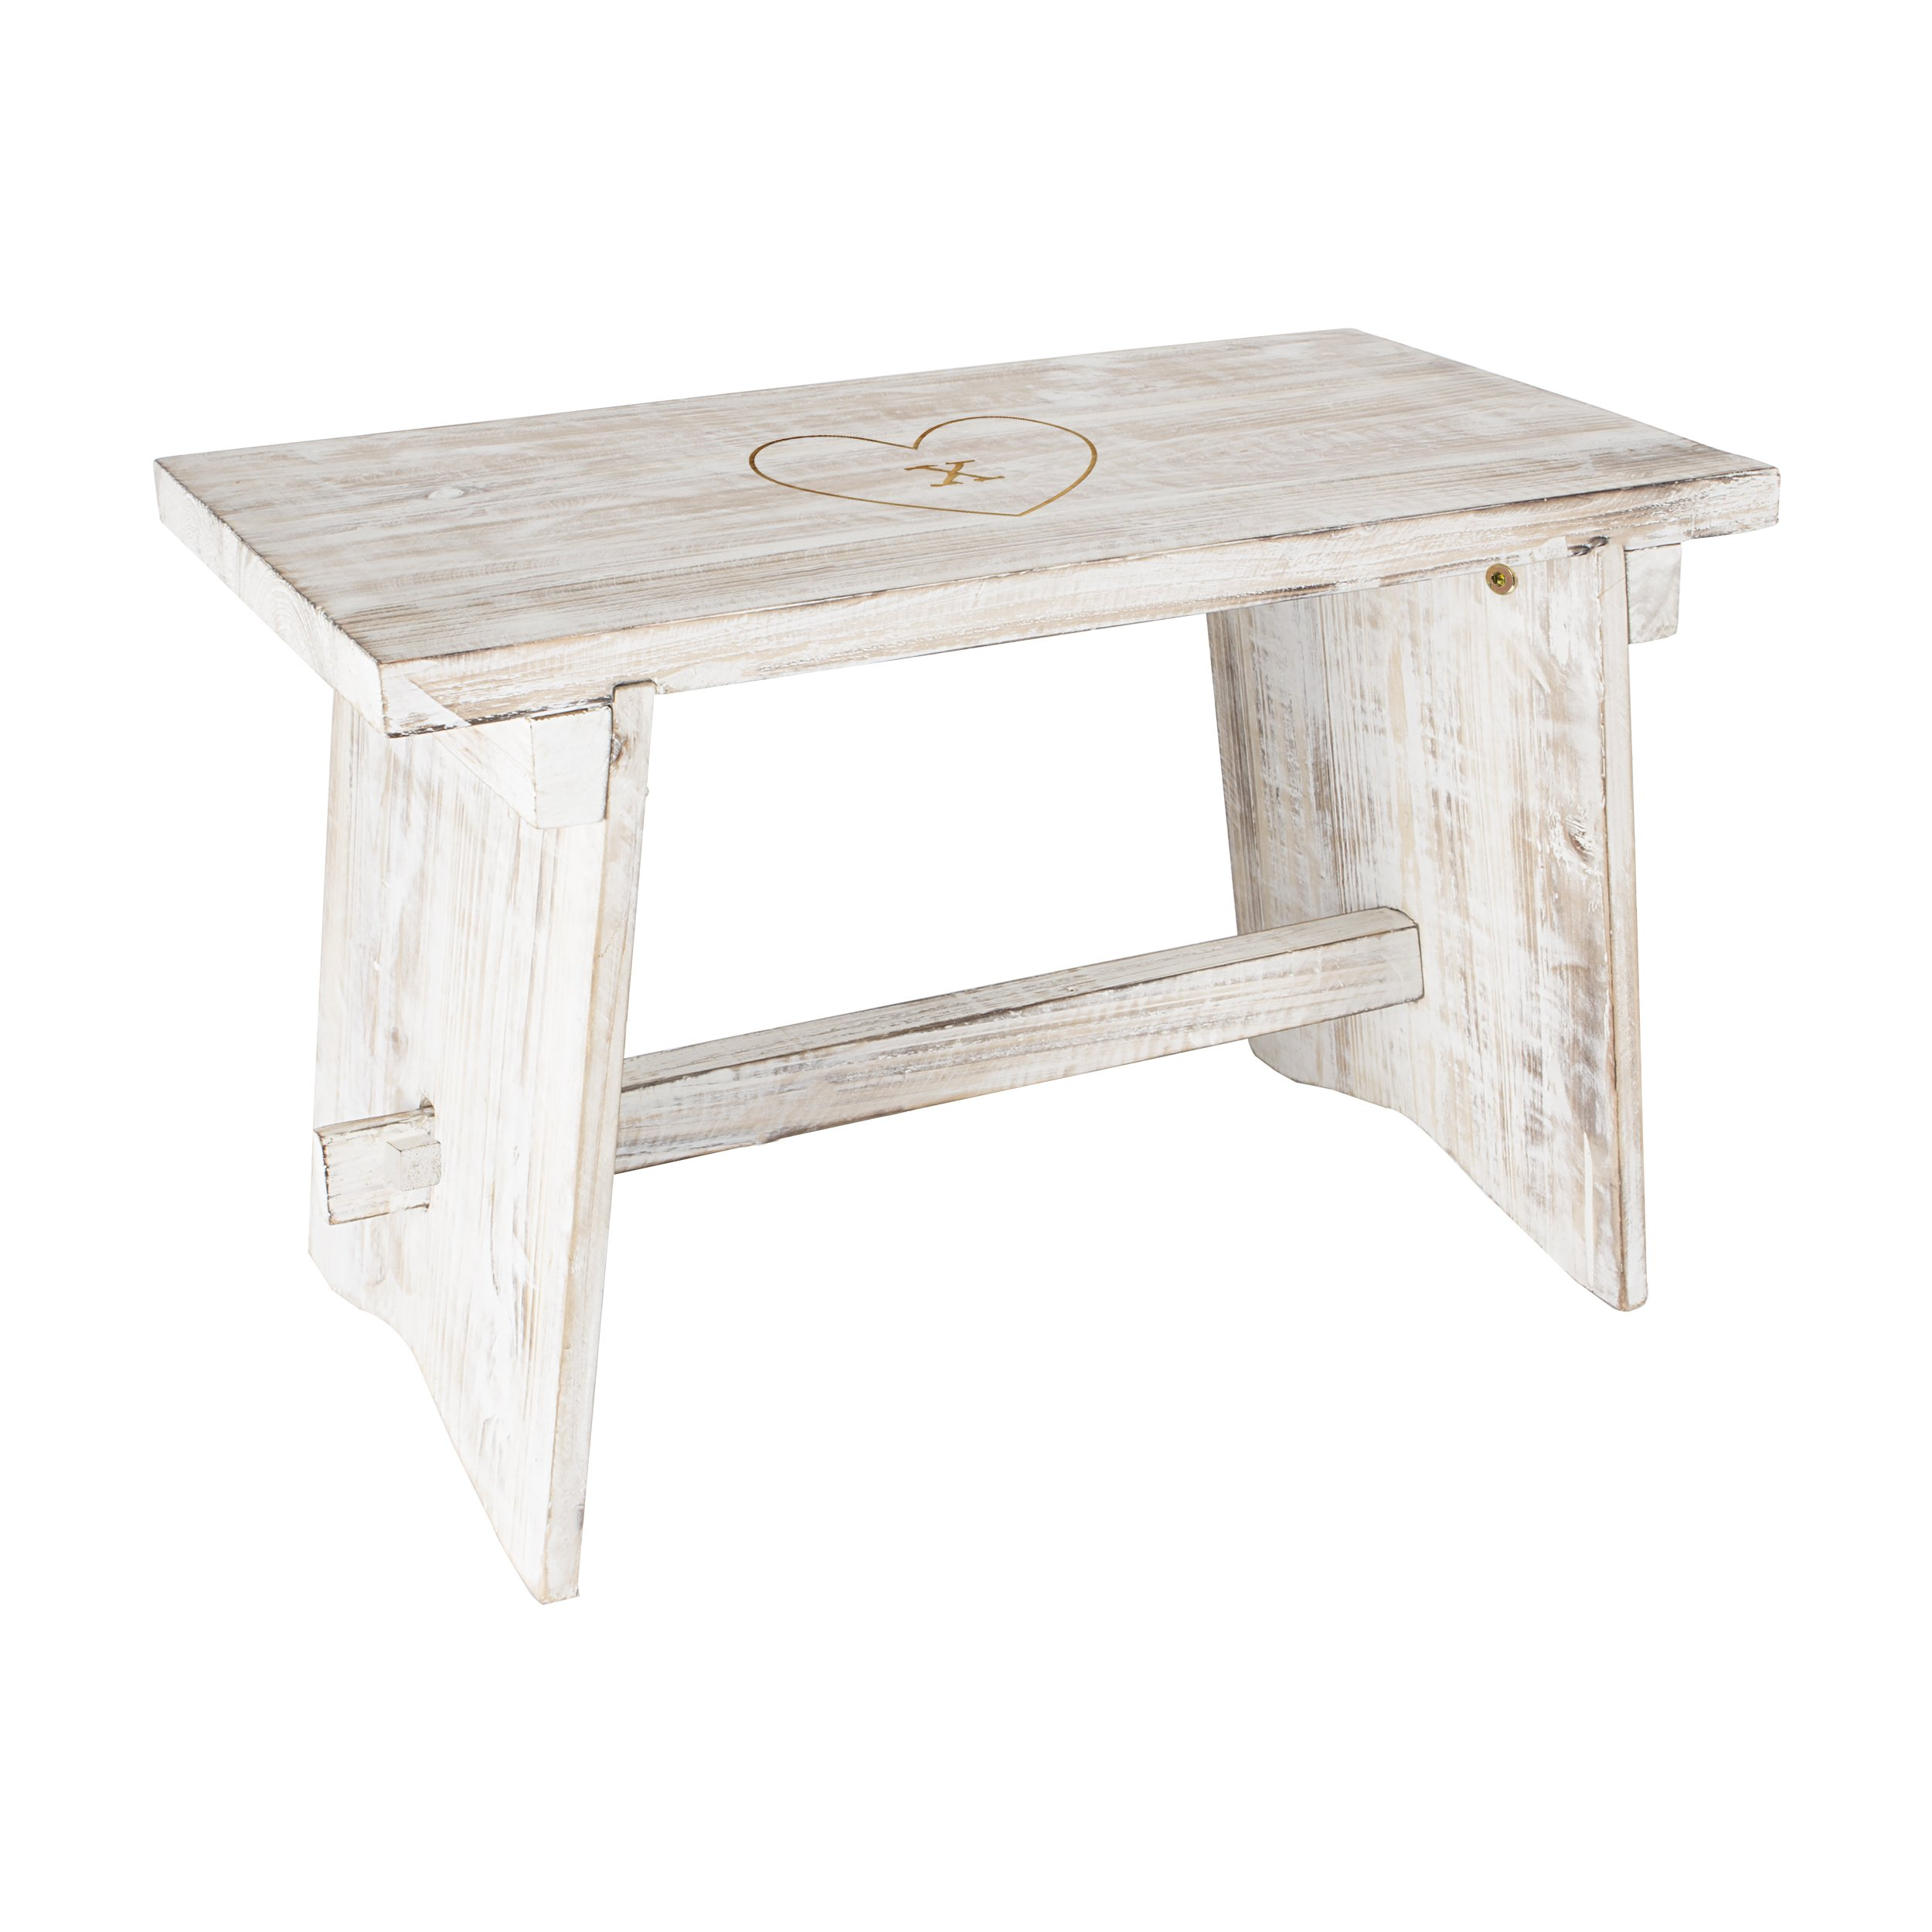 Cathy's Concepts HRT-3950-X Personalized Heart Rustic Wooden Guestbook Bench by Cathy's Concepts